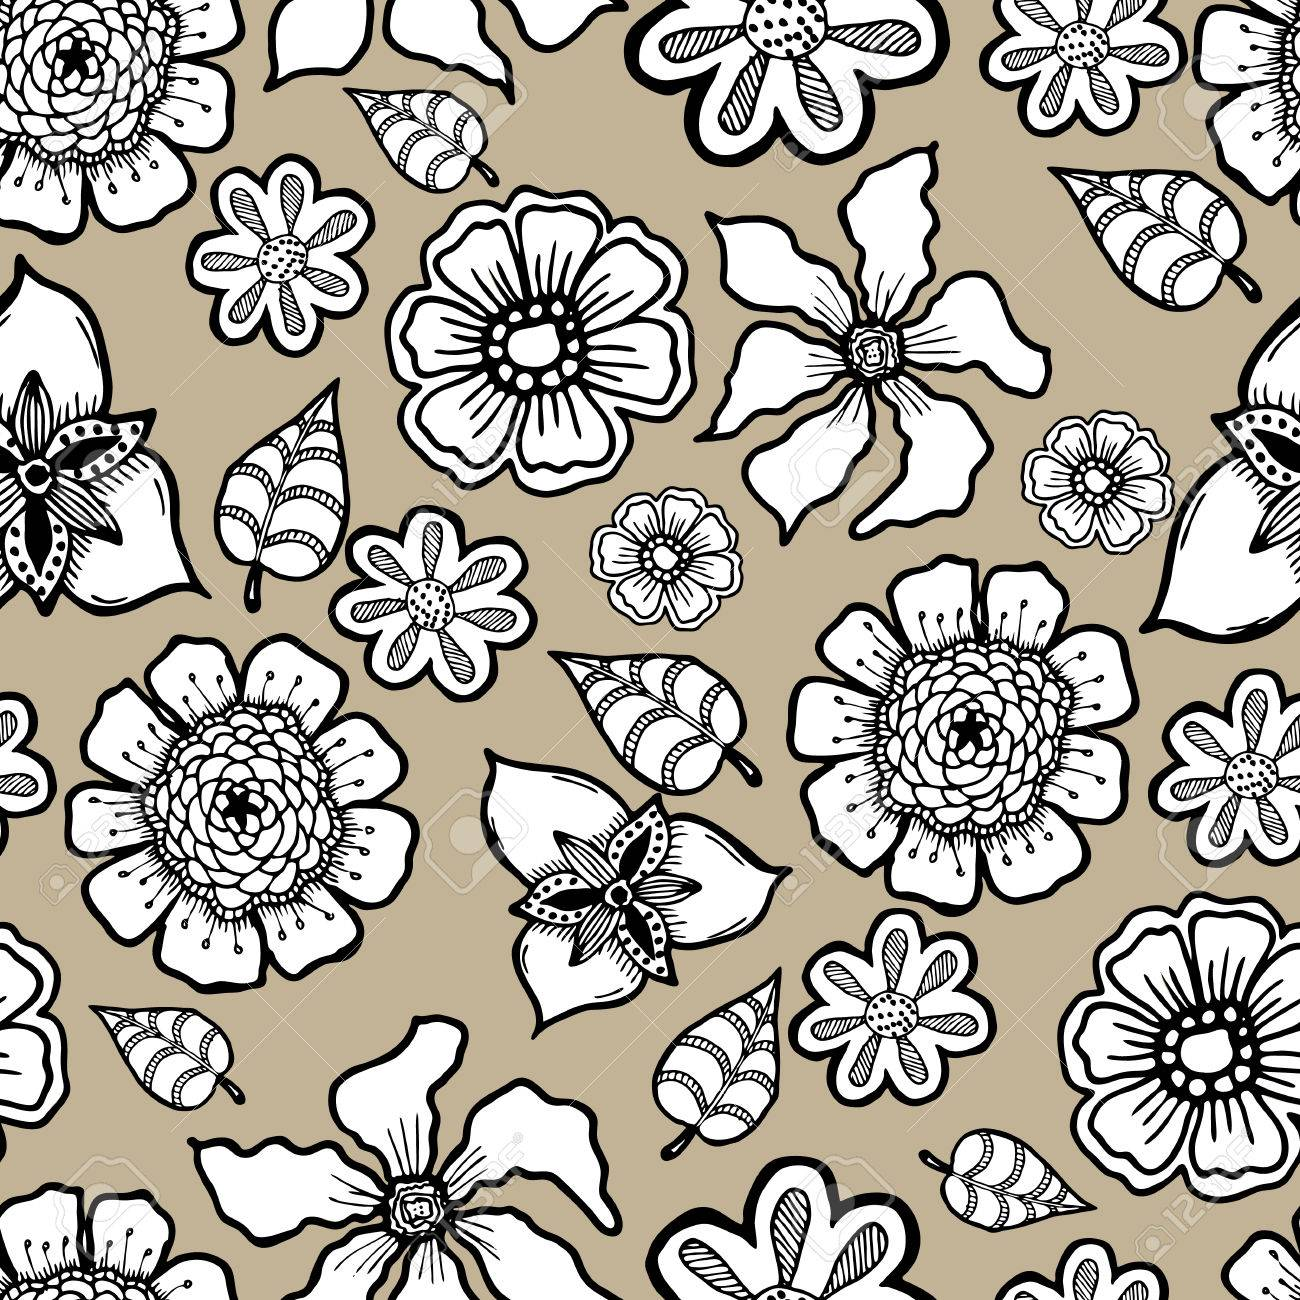 Ornate Floral Pattern With Flowers Doodle Sharpie Background 1300x1300